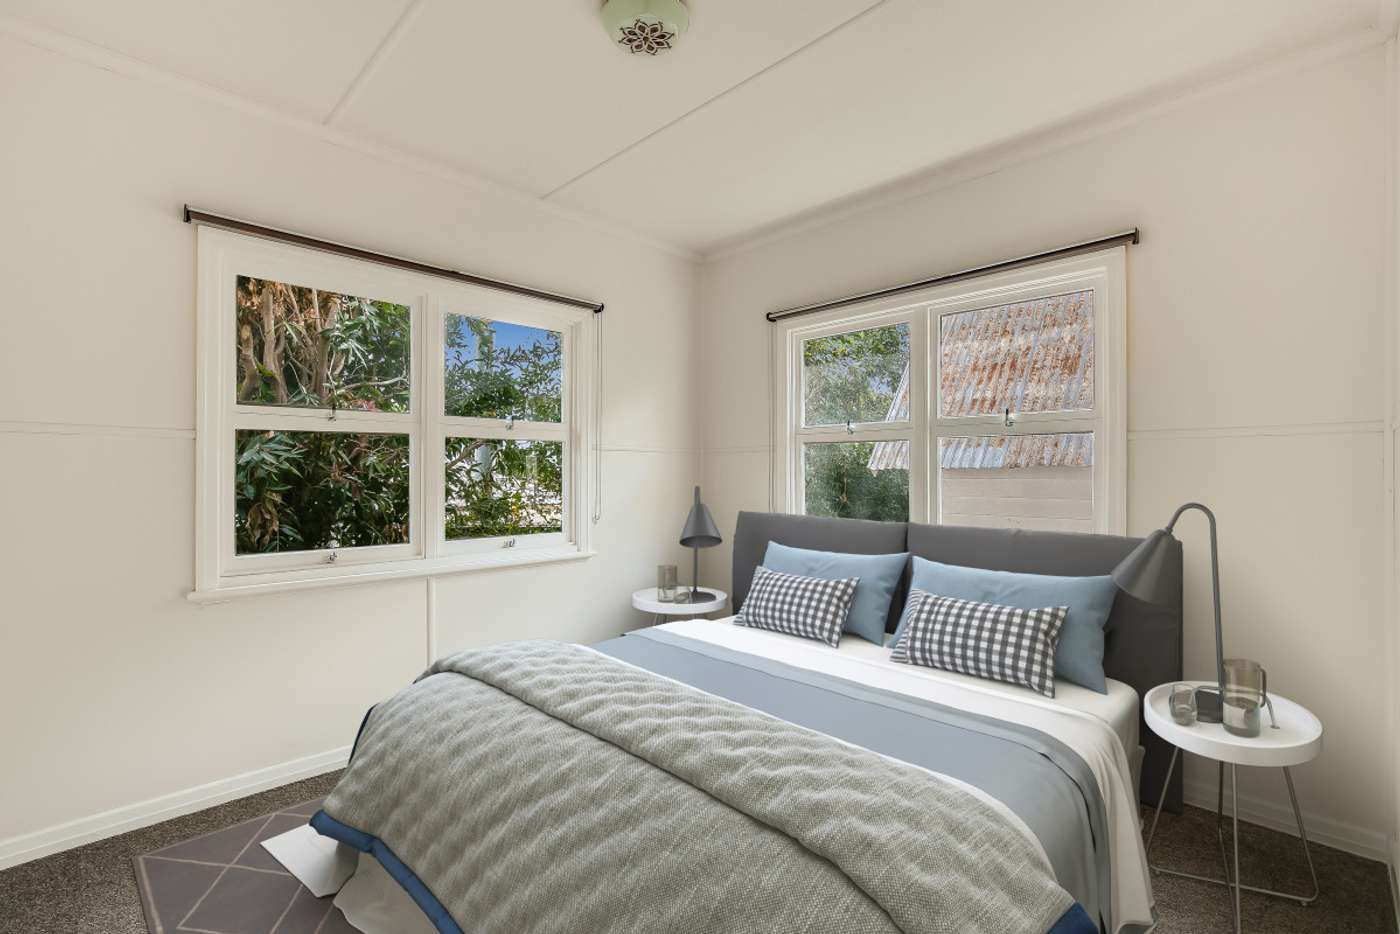 Sixth view of Homely house listing, 47 Parsons Street, Rangeville QLD 4350